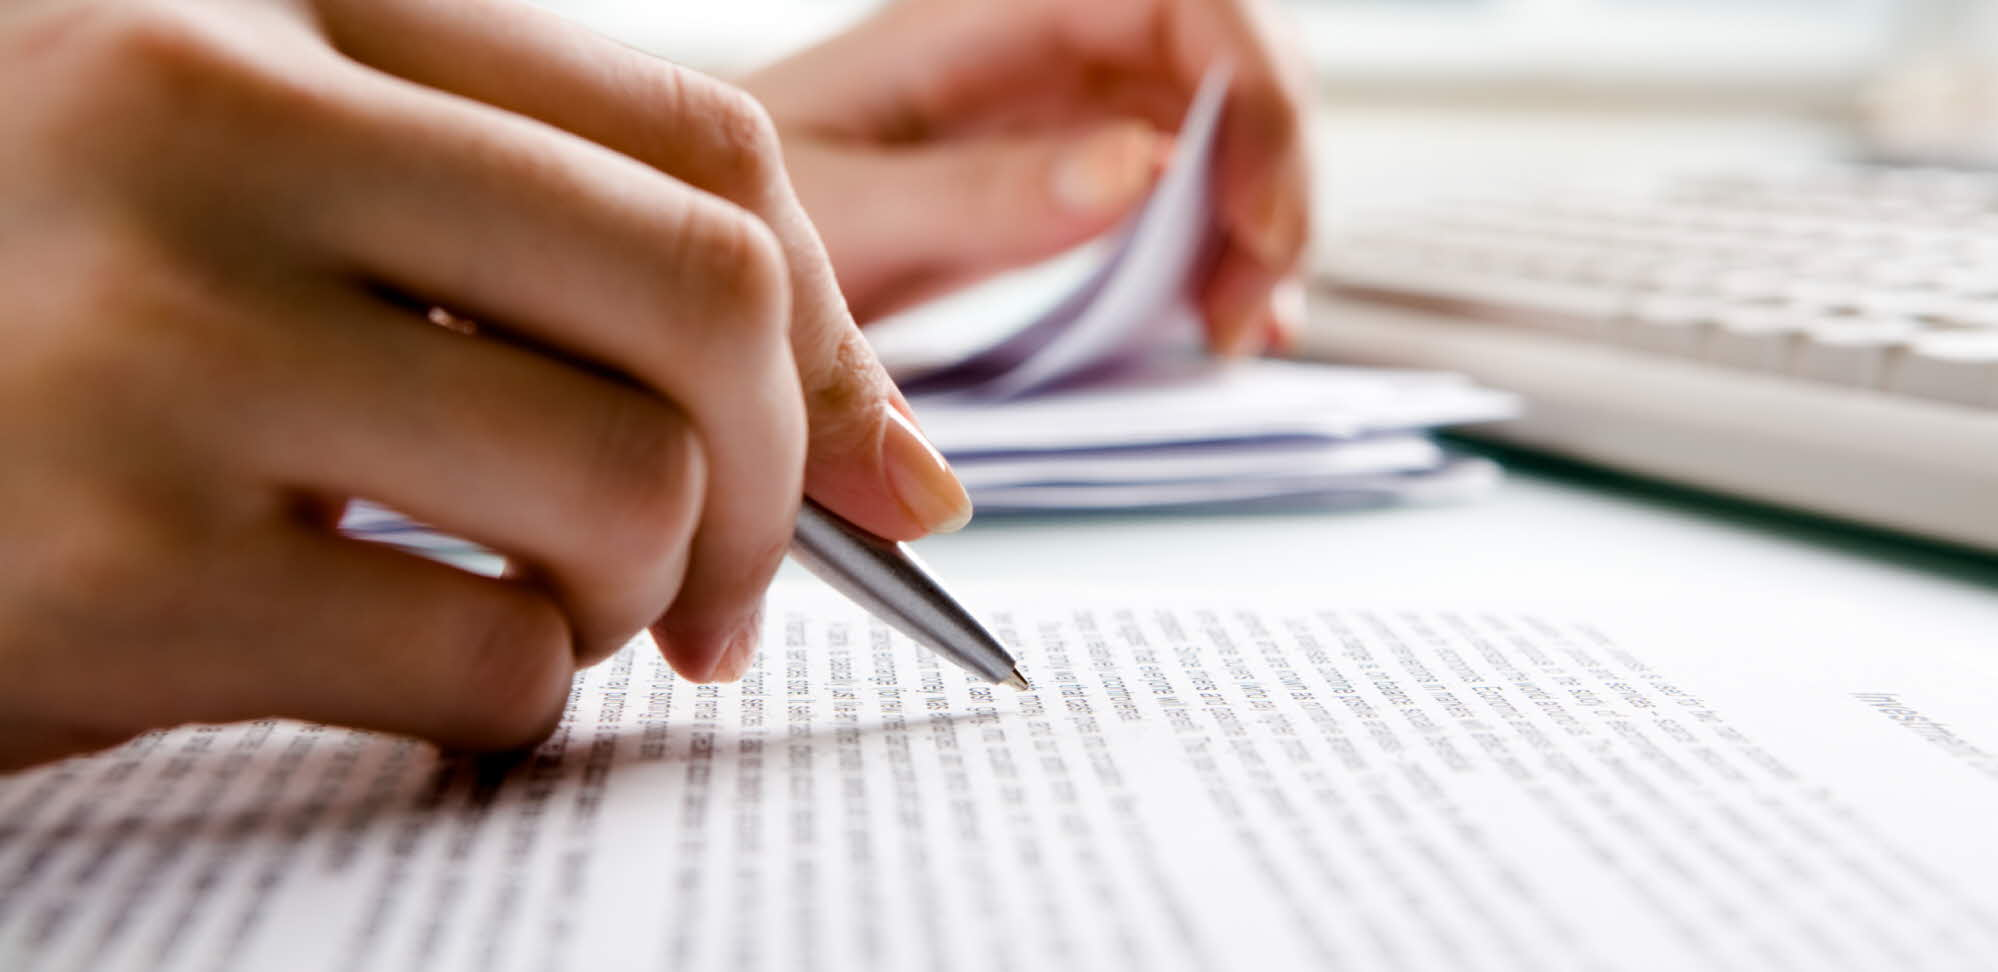 Professional masters essay proofreading service for college